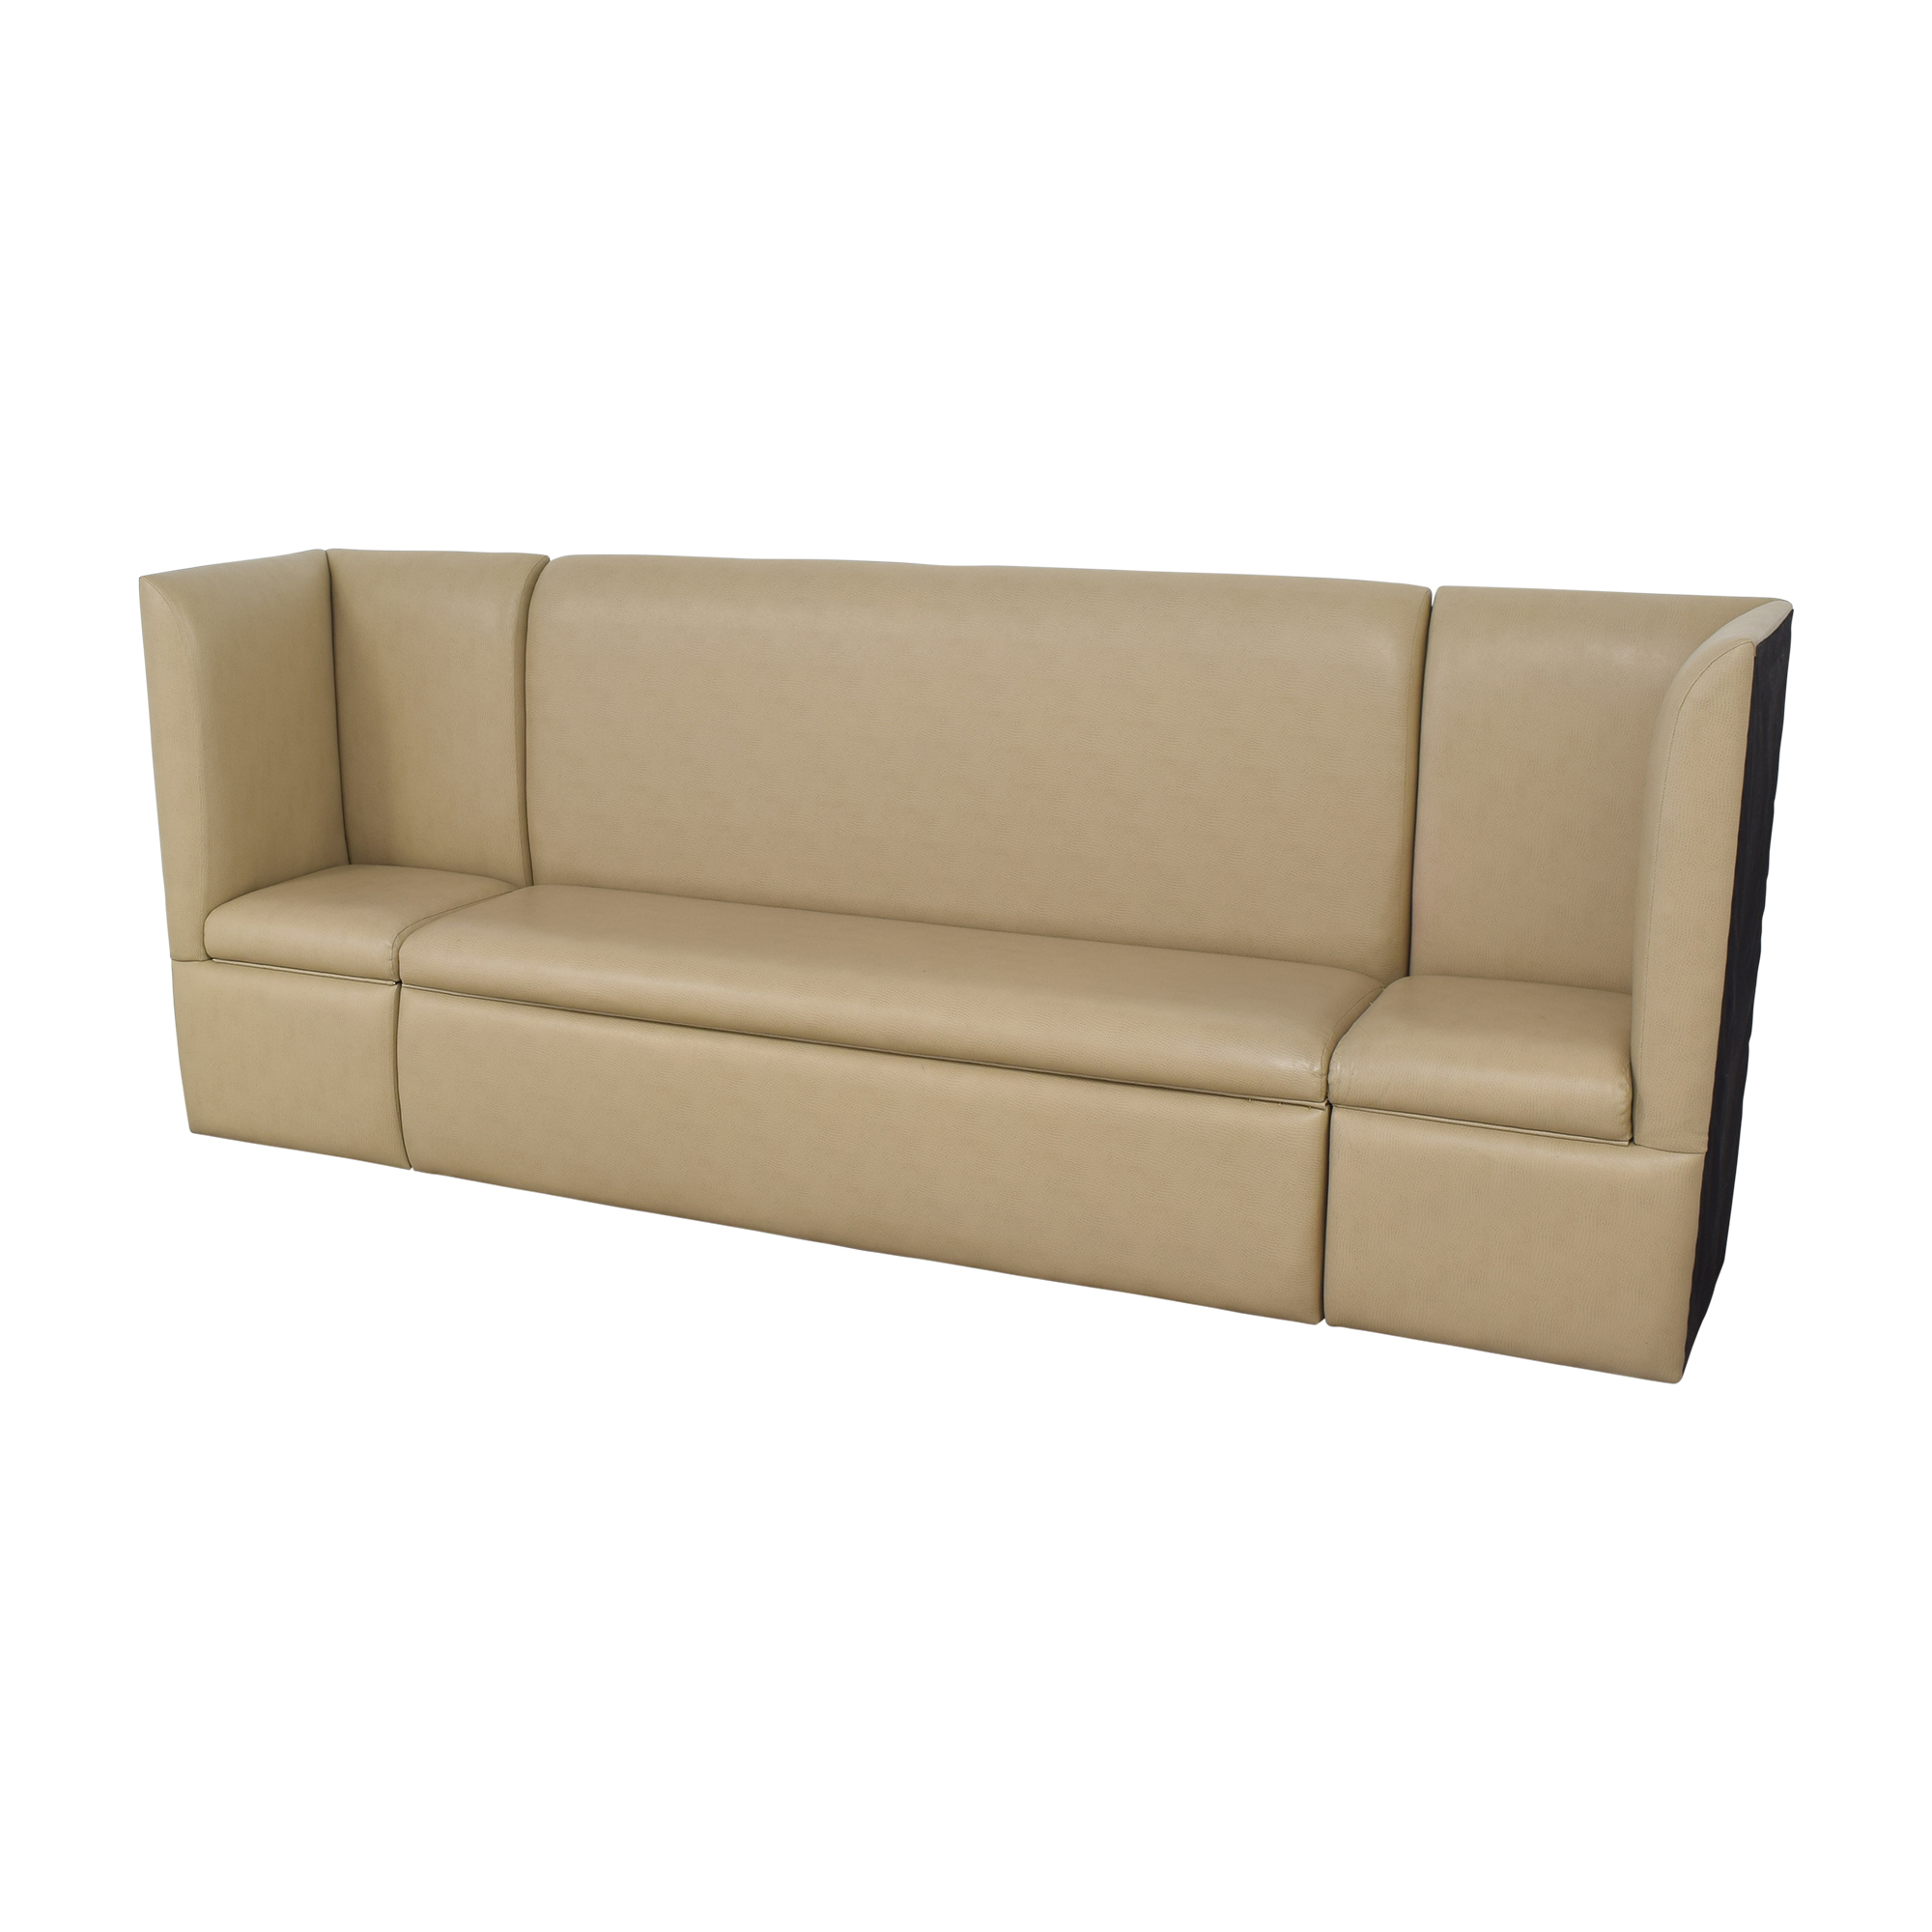 Custom Contemporary Sectional Storage Banquette for sale